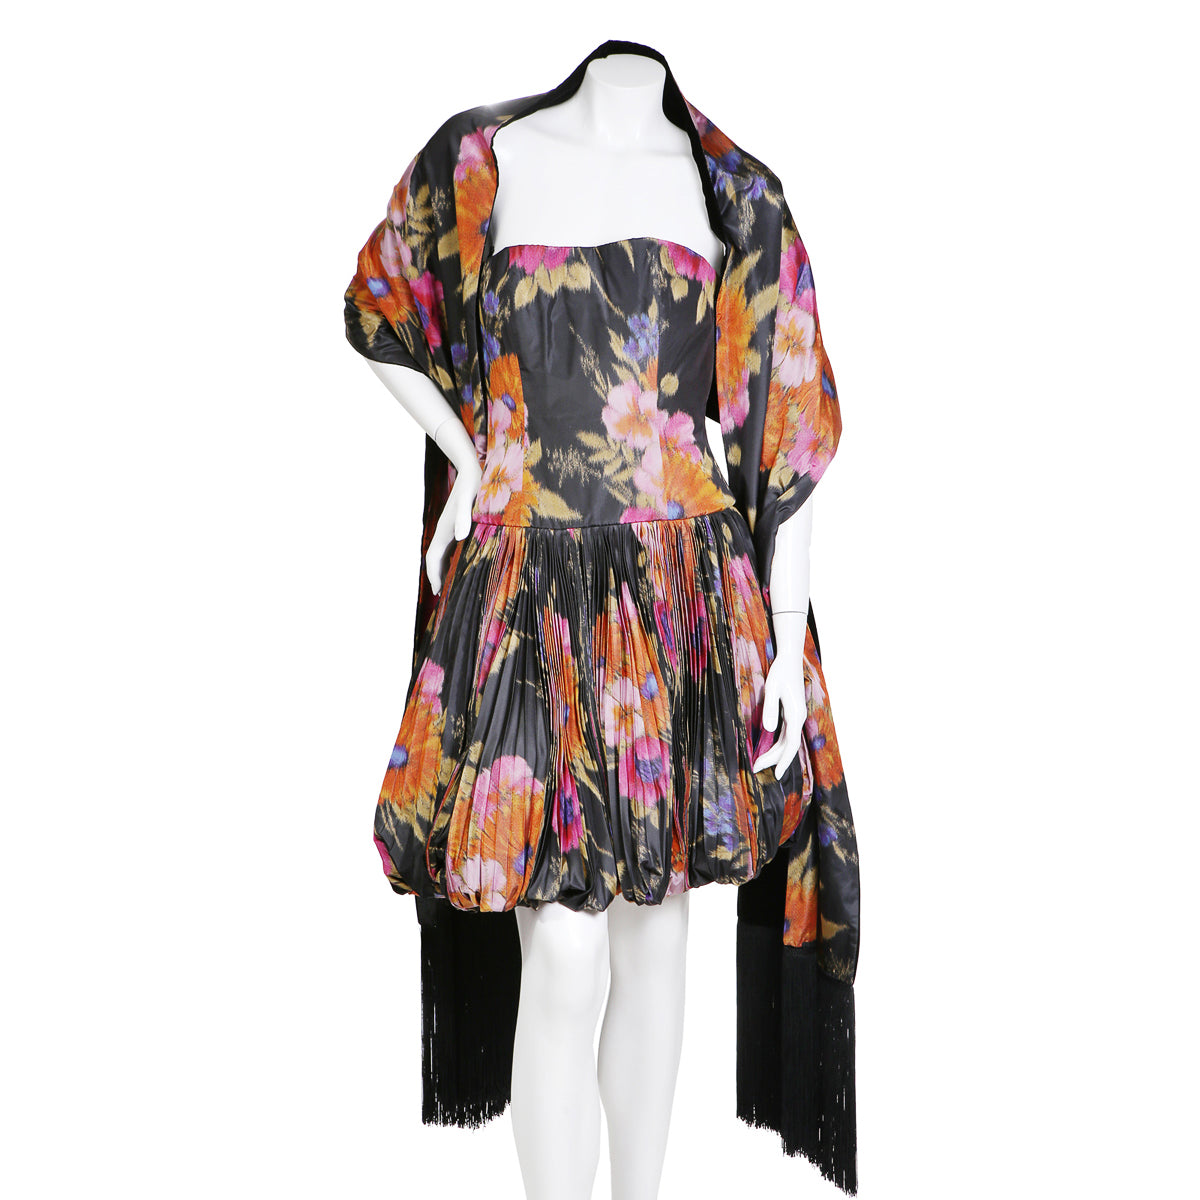 Vintage Floral Print Pleated Taffeta Dress with Shawl, 1990s